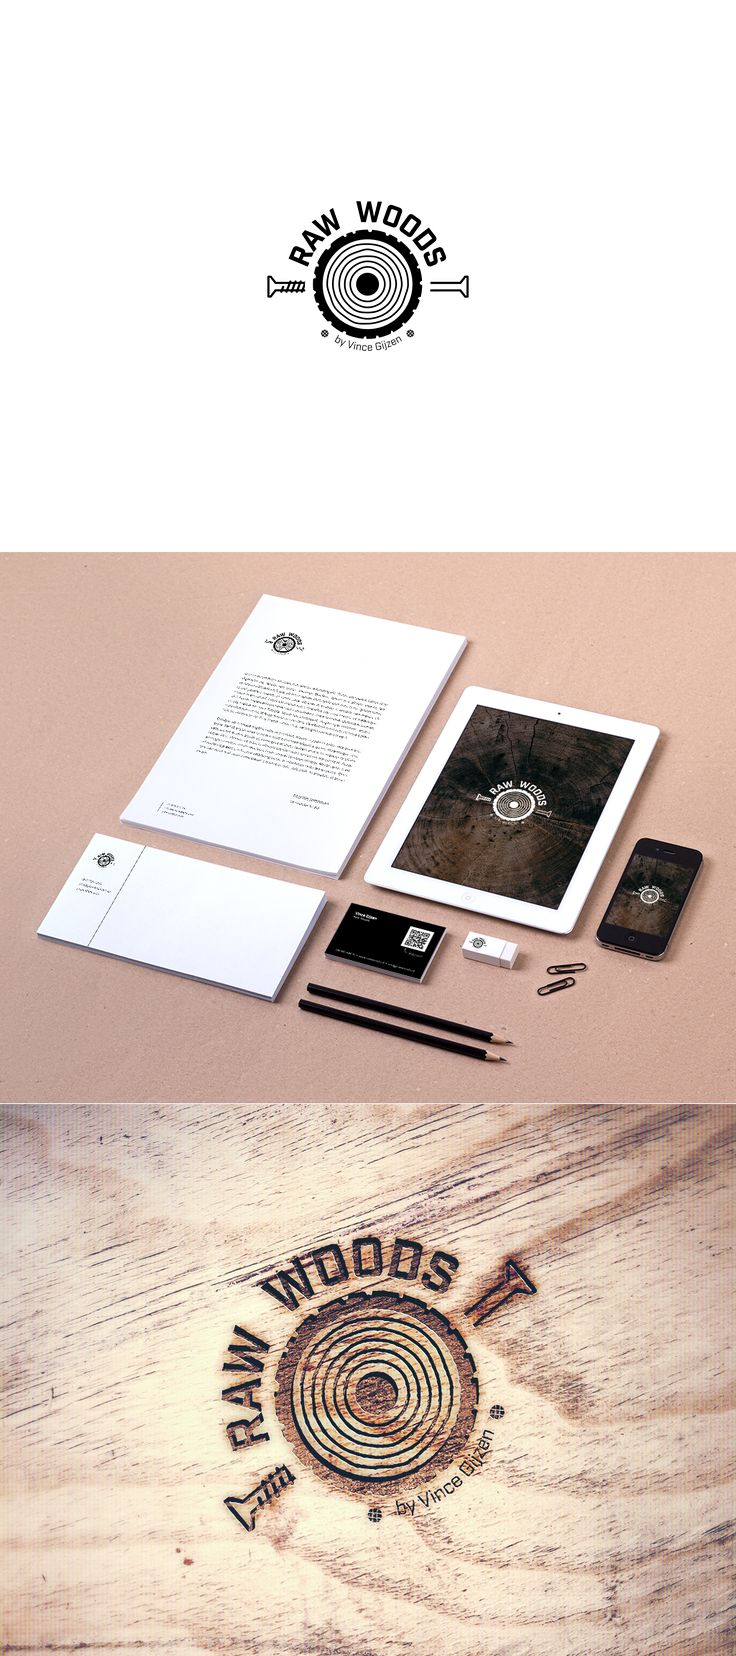 Raw Woods is a company that focuses on the production of unique art and furniture from used wood. I designed their logo, business cards and other branding.   Raw Woods own unique character shines through in everything I designed for them.